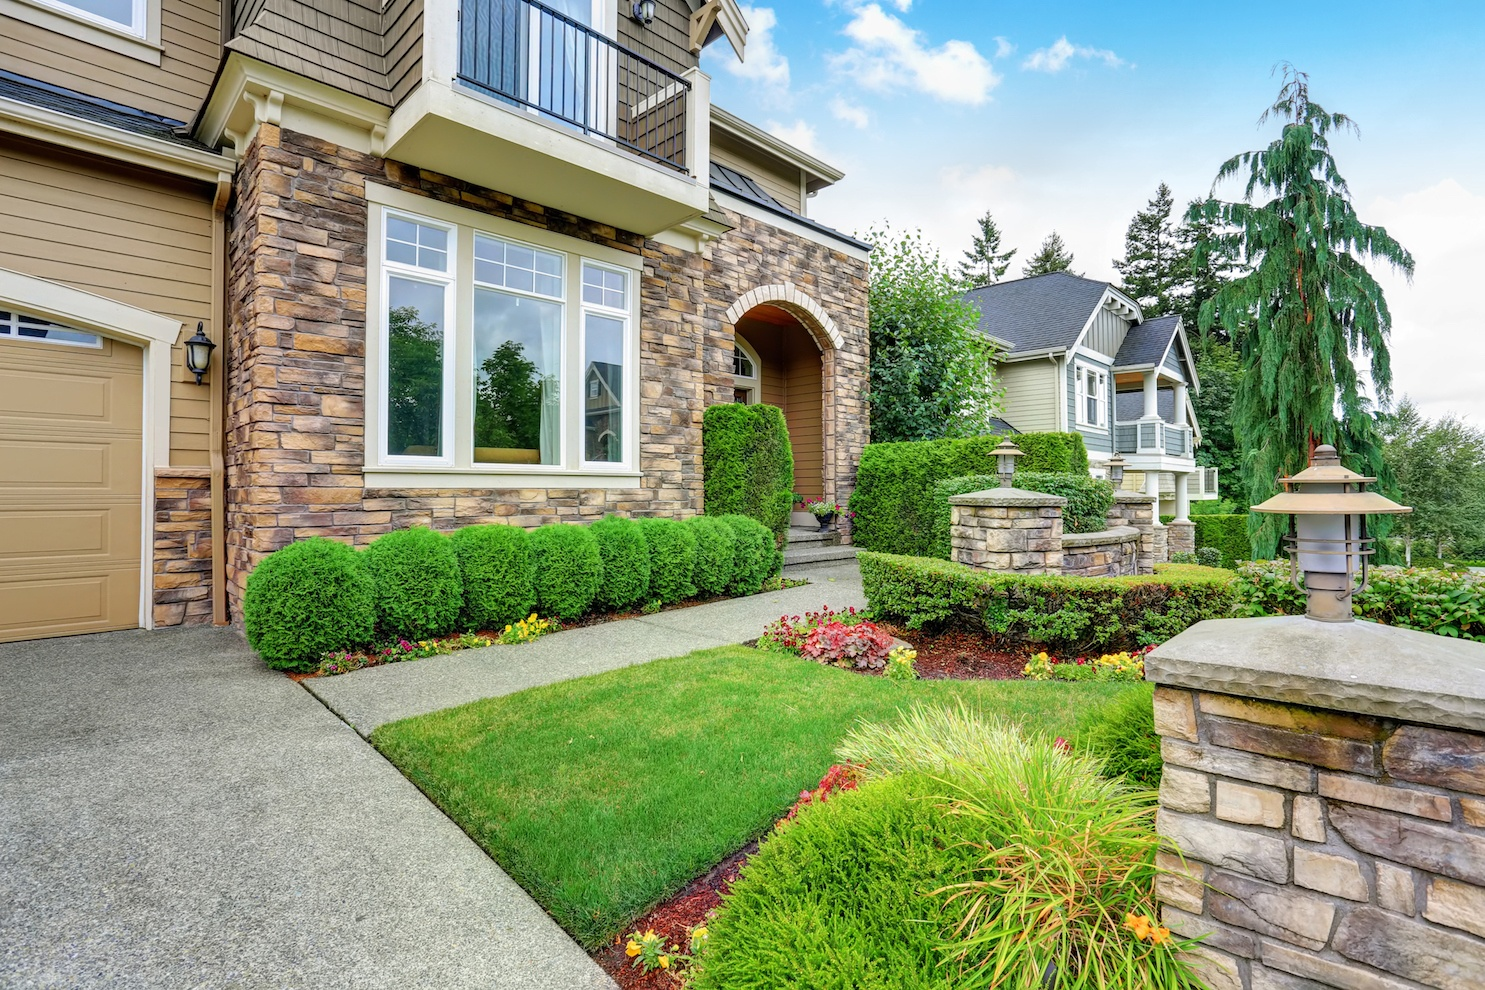 Beautiful curb appeal of American house with stone trim